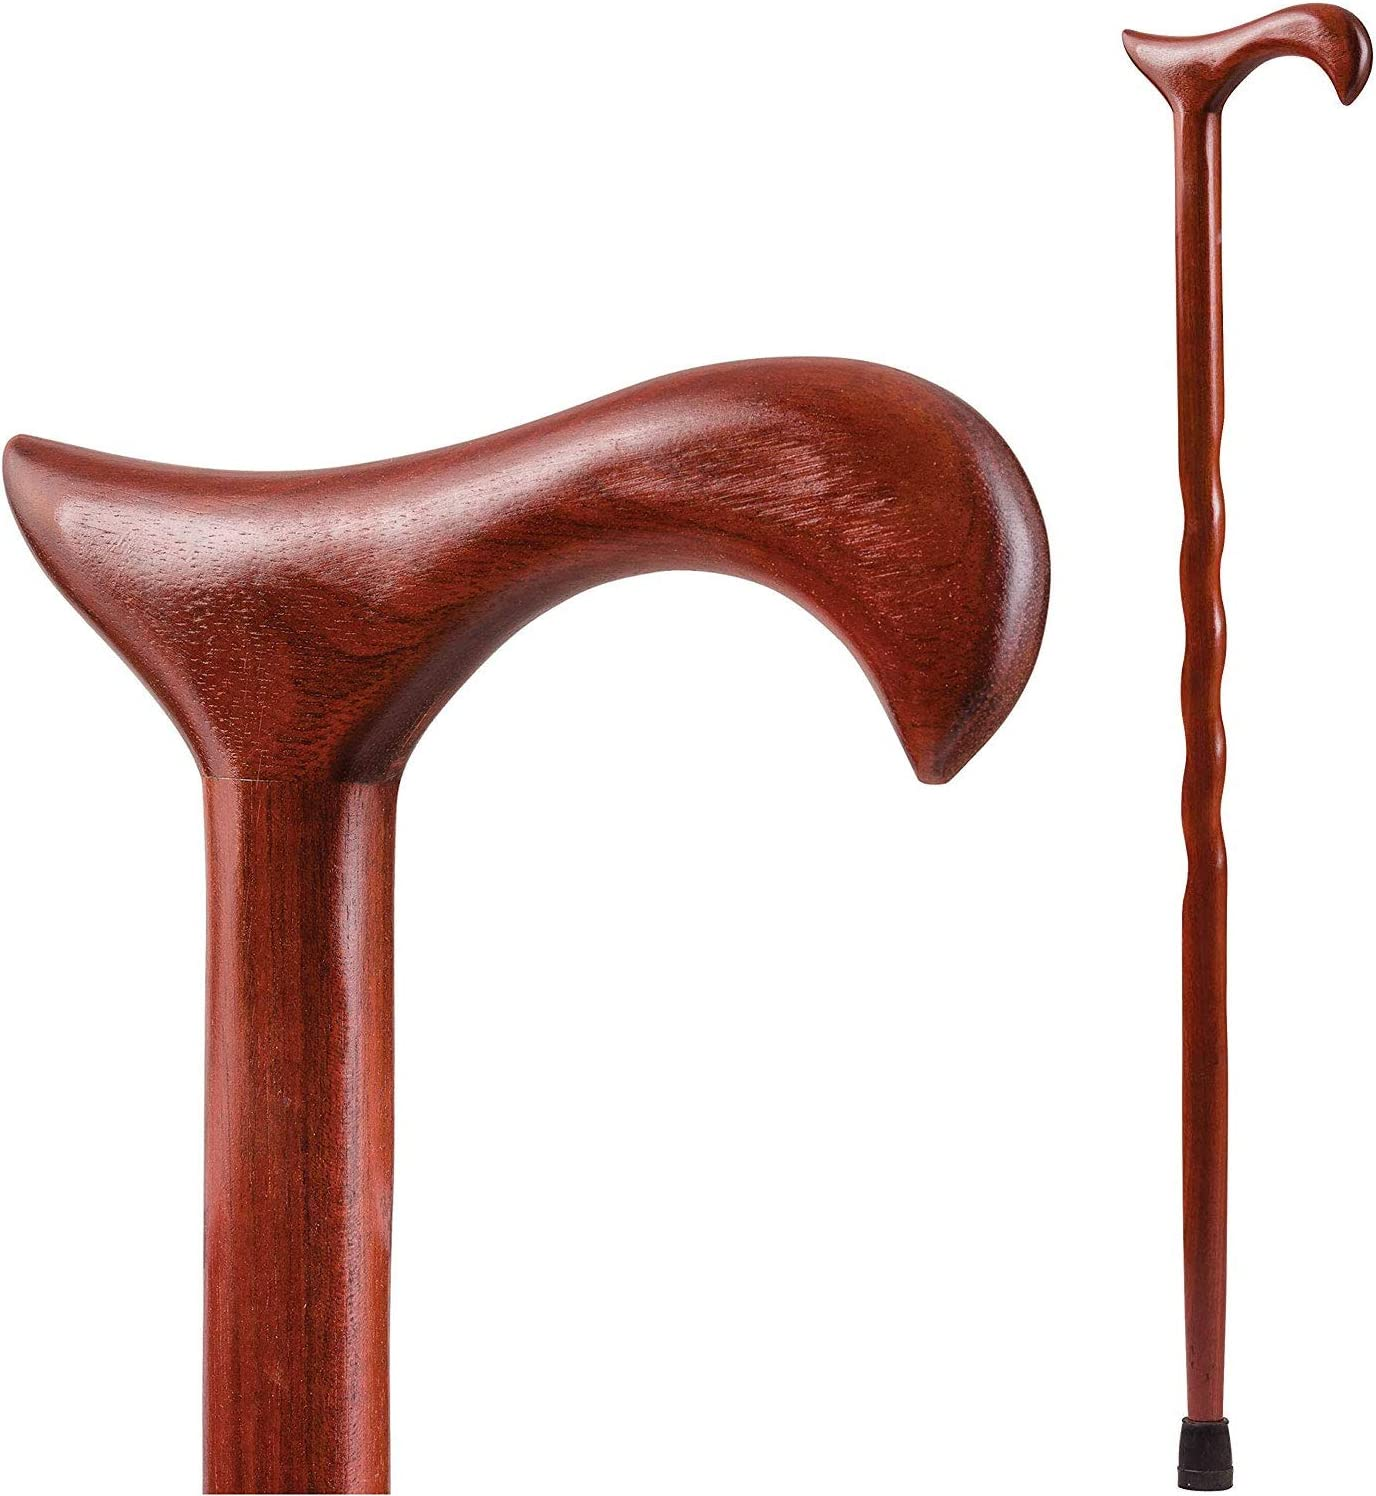 Handcrafted Wood Walking Classic Cane - Made Direct store Brazos by the in Twis USA